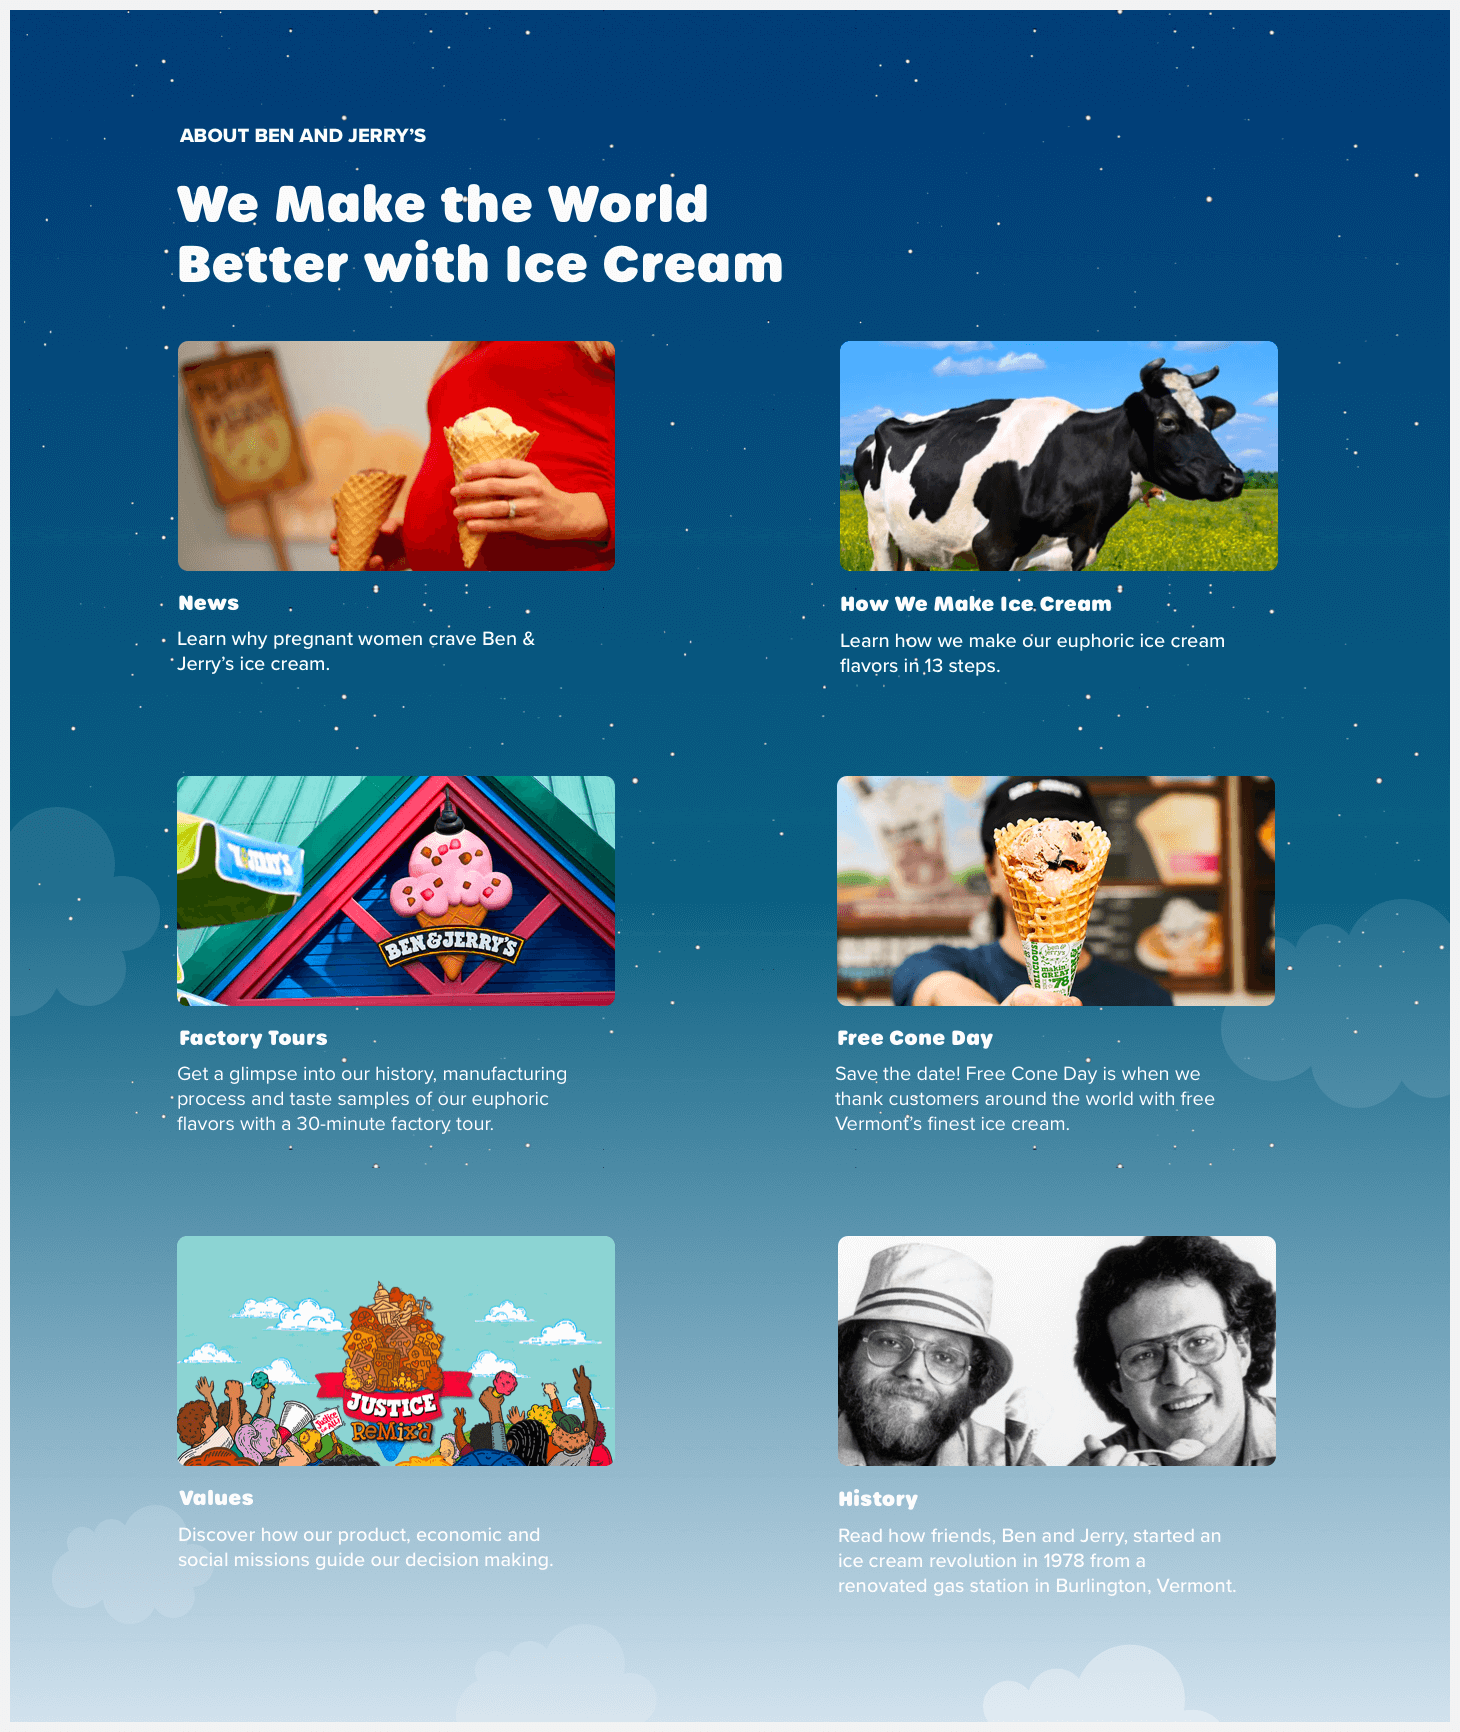 Section 4 of Ben & Jerry's website redesign concept.